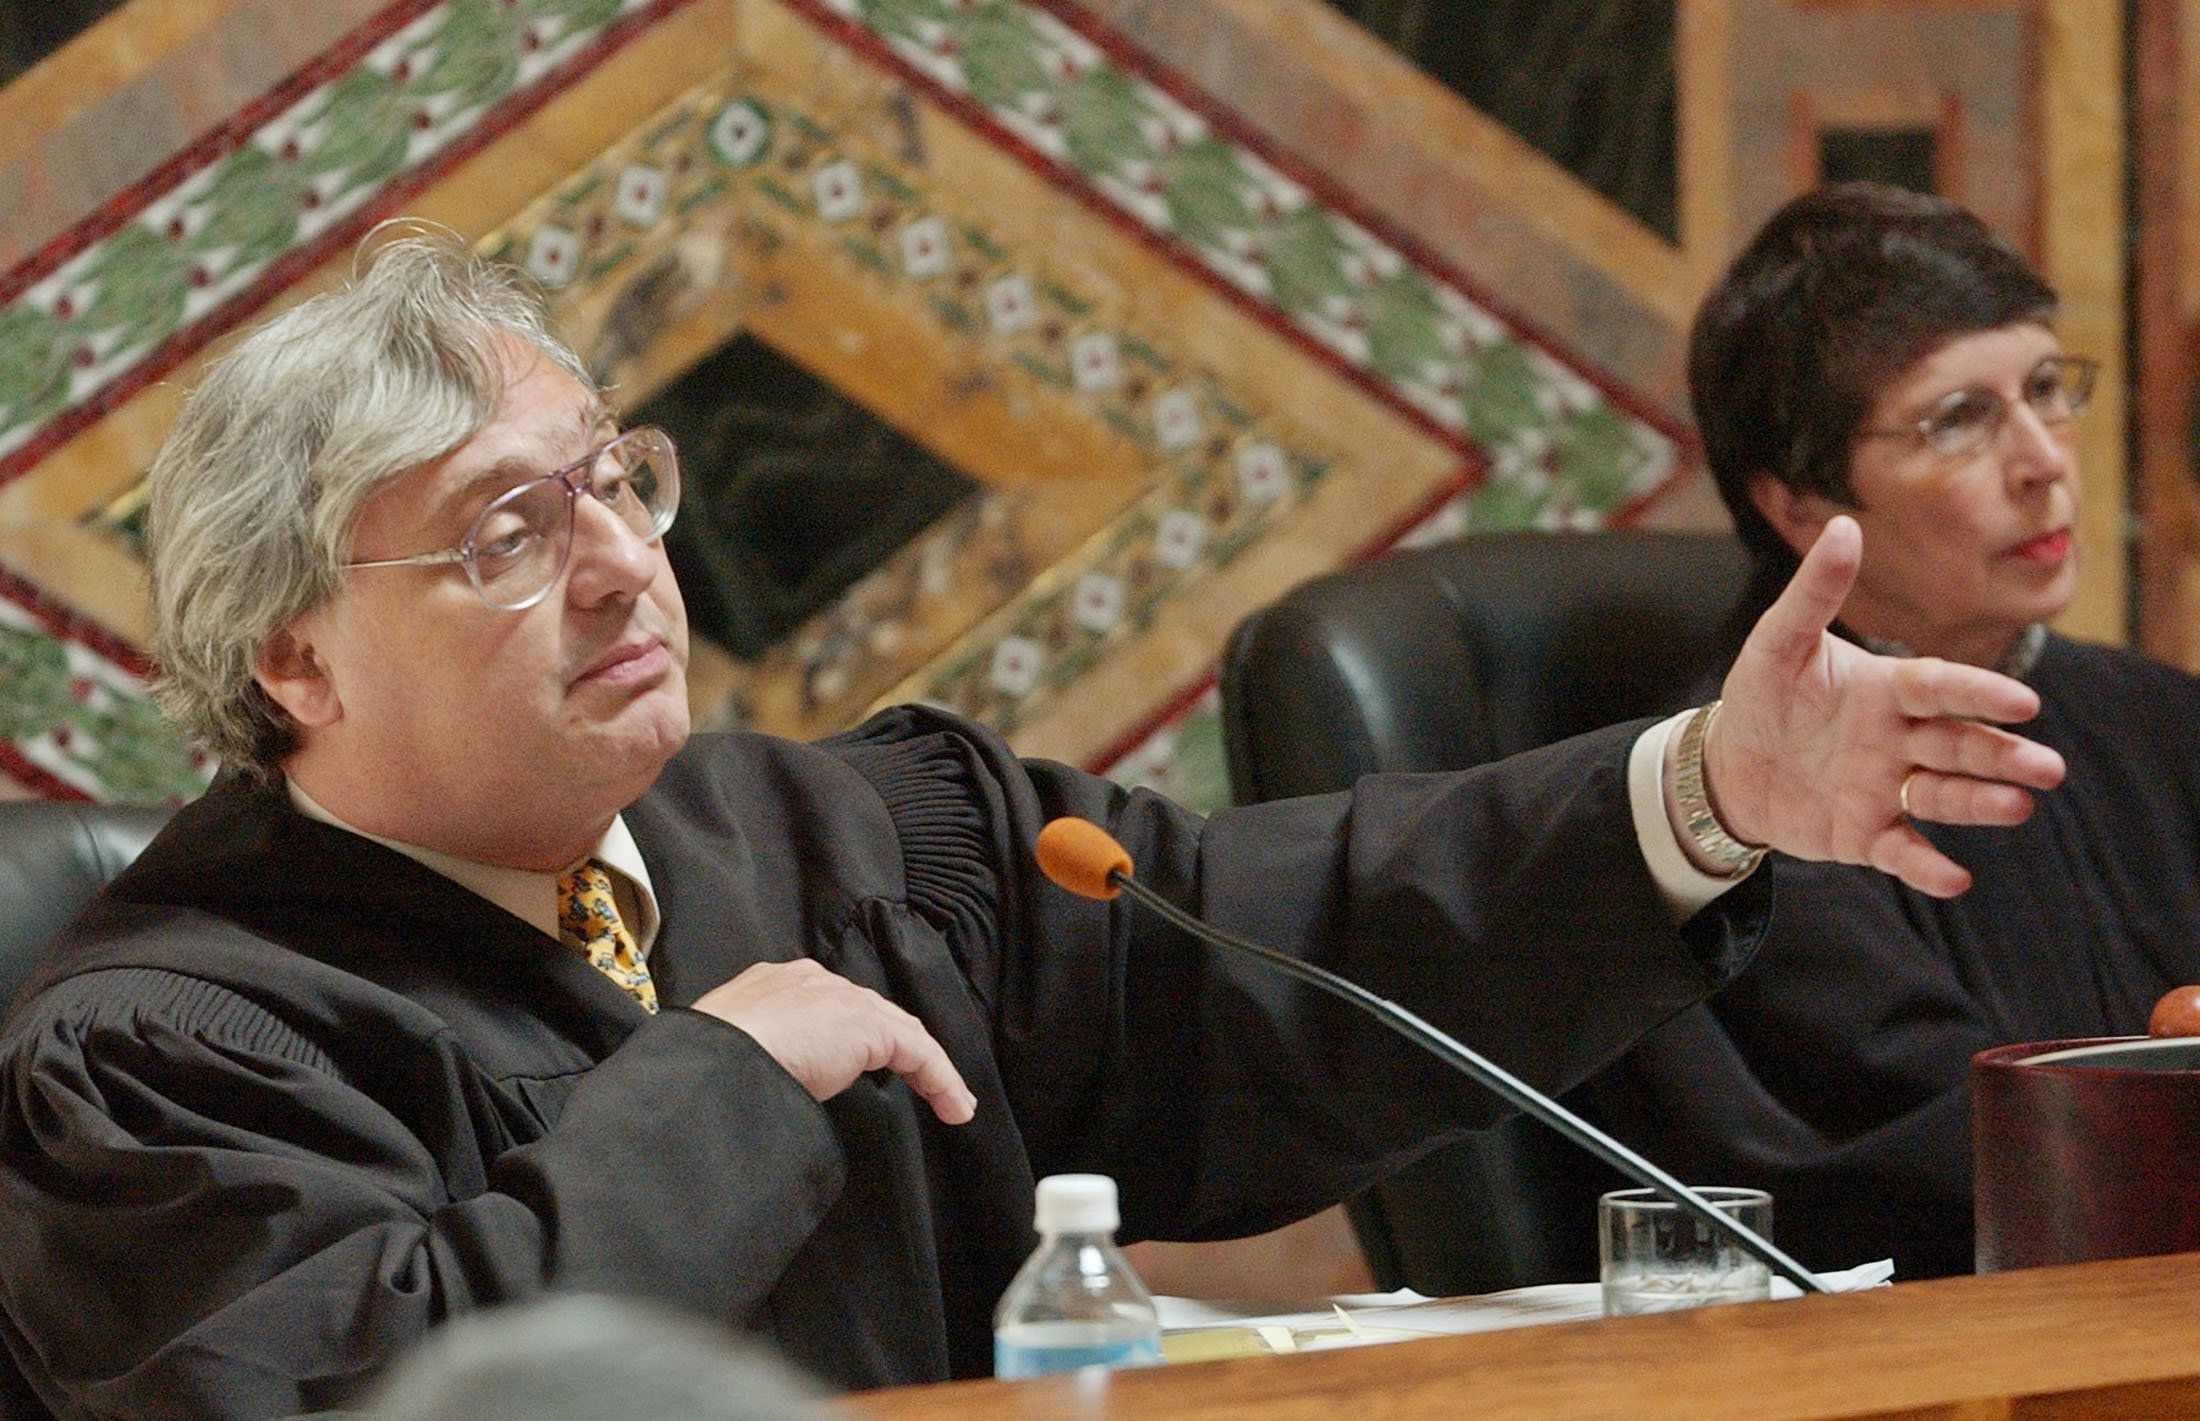 Judge Alex Kozinski, of the 9th U.S. Circuit Court of Appeals, gestures during oral arguments in San Francisco, September 22, 2003. Federal judges sharply and critically questioned lawyers defending a delay in California's October 7 gubernatorial recall election on Monday as an 11-member appeals court panel tried to decide whether to rescind an earlier ruling postponing the vote. The court's three Republican appointees, including Kozinski, led the questioning of American Civil Liberties Union attorneys Mark Rosenbaum and Lawrence Tribe in San Francisco. REUTERS/Paul Sakuma/POOL  PS/SV